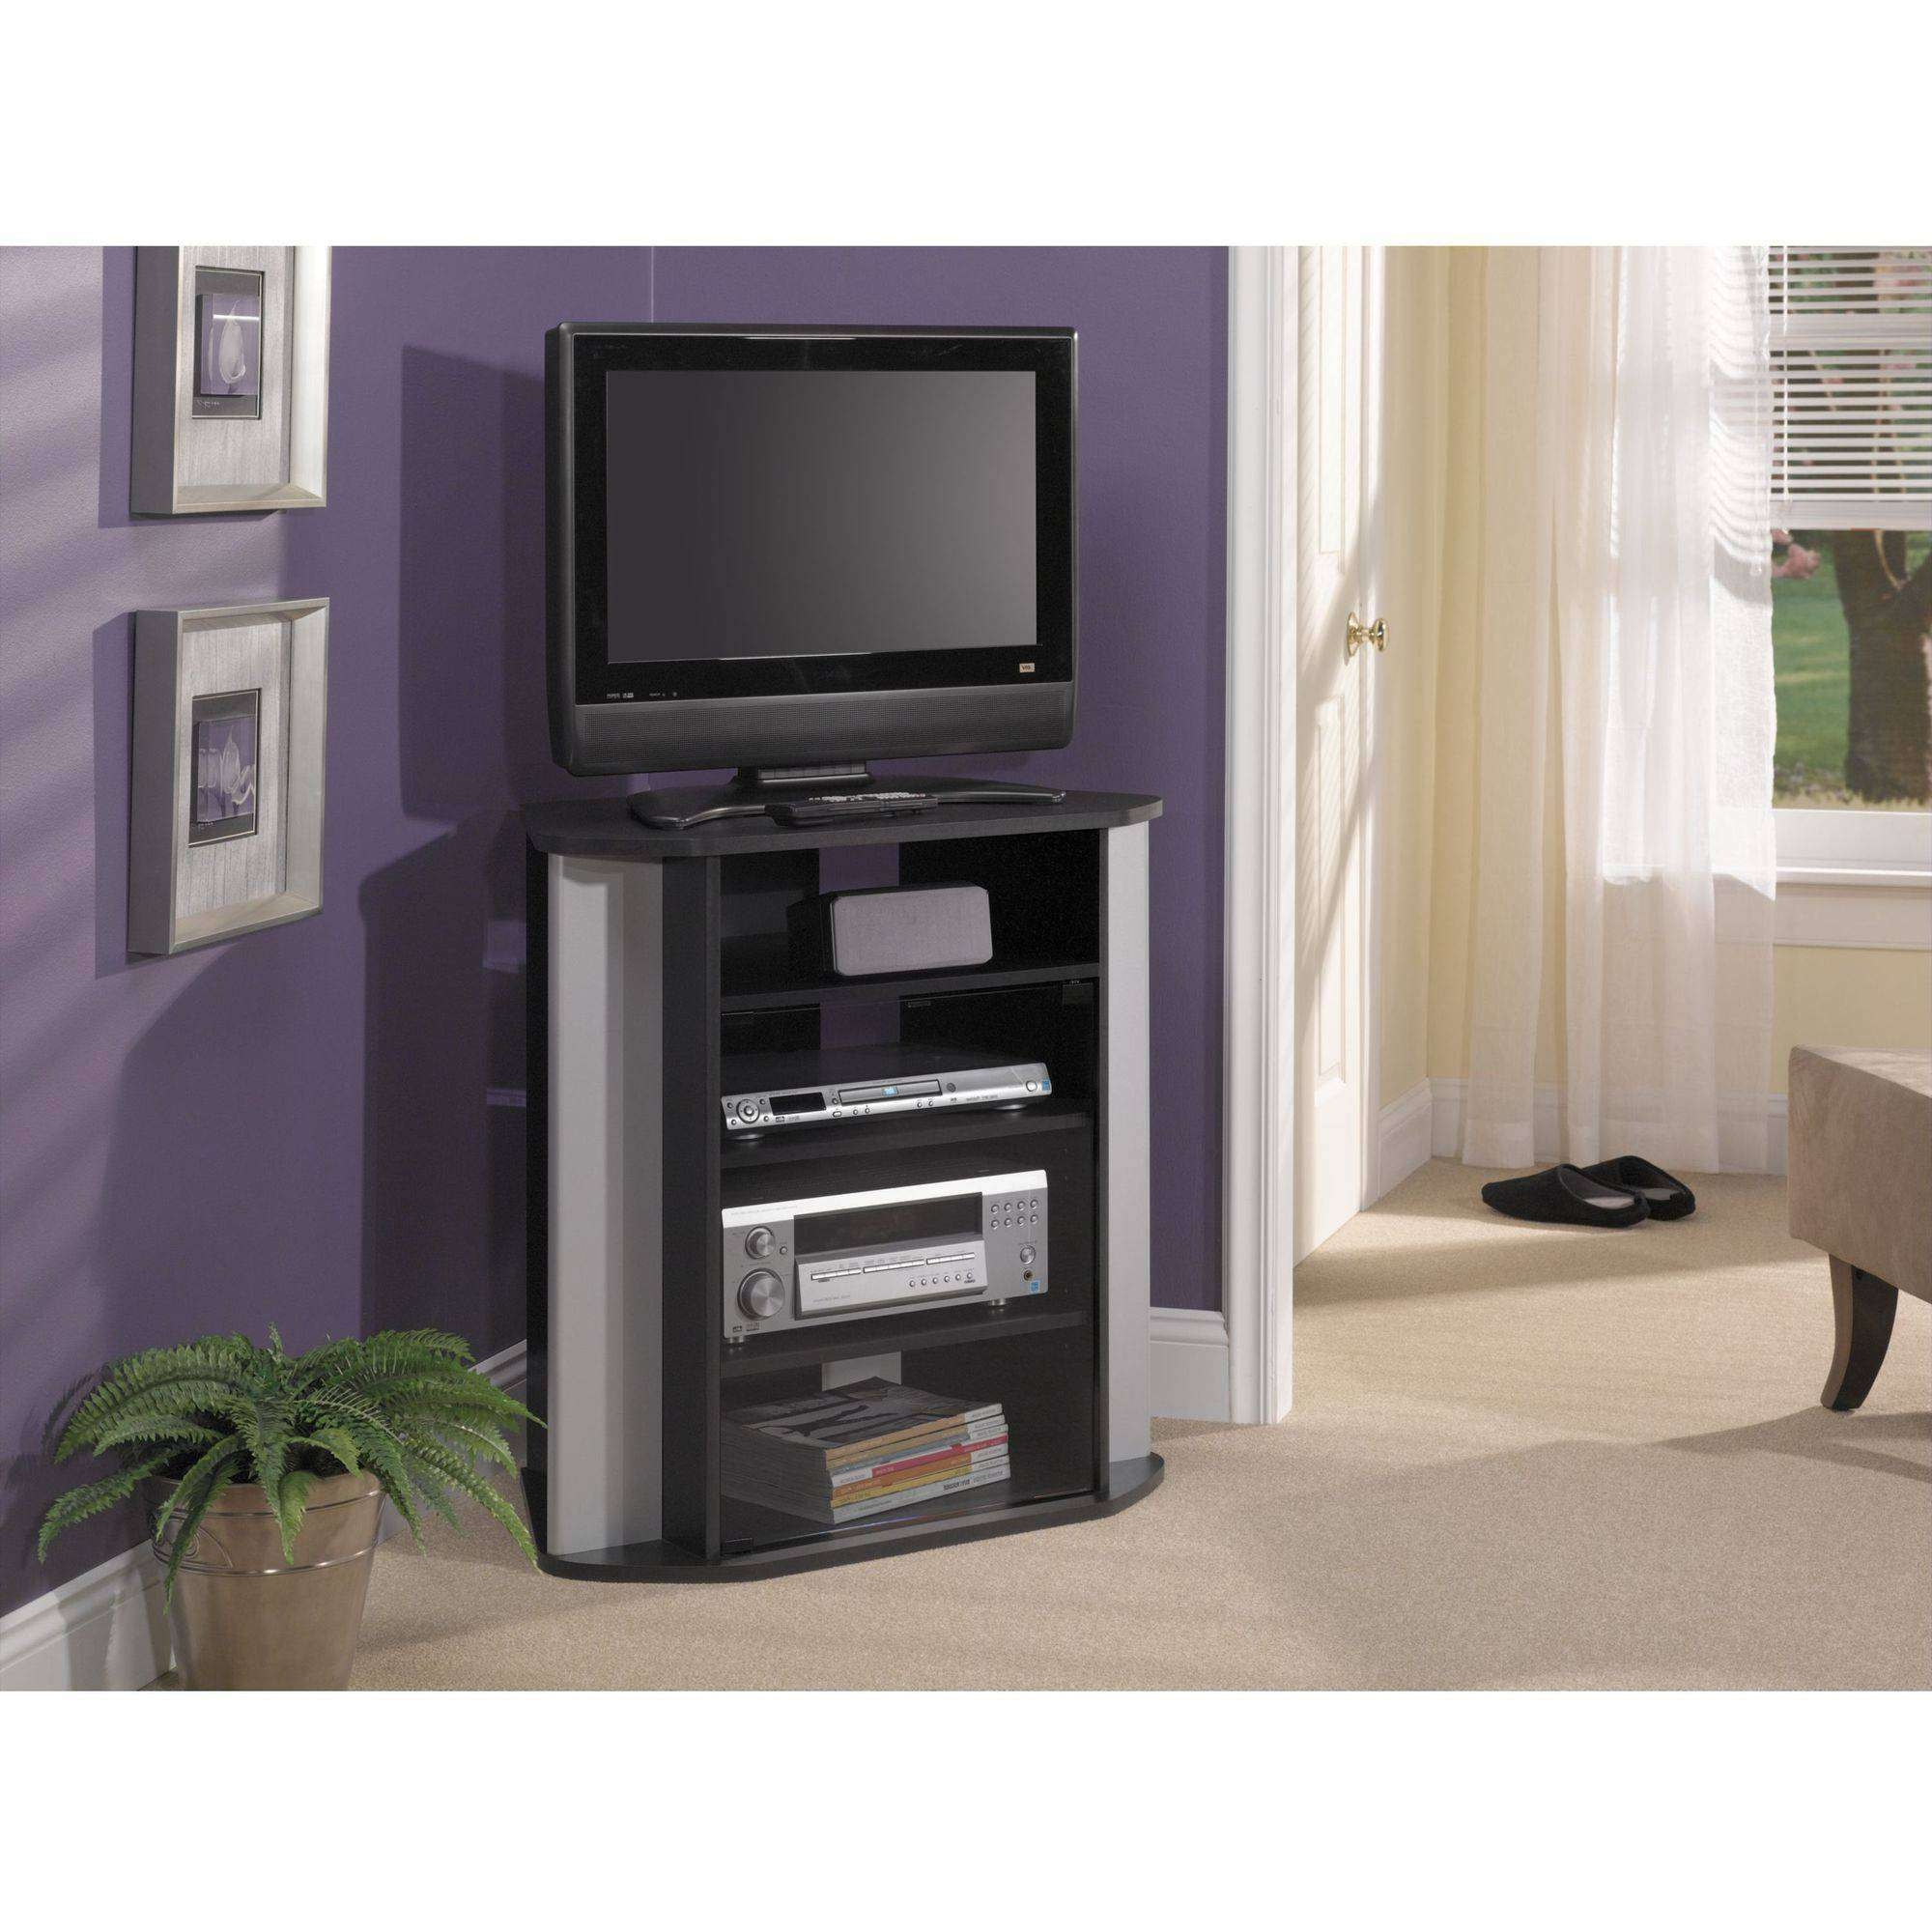 Bush Visions Black Tall Corner Tv Stand, For Tvs Up To 37 Intended For Tall Tv Cabinets Corner Unit (View 1 of 20)